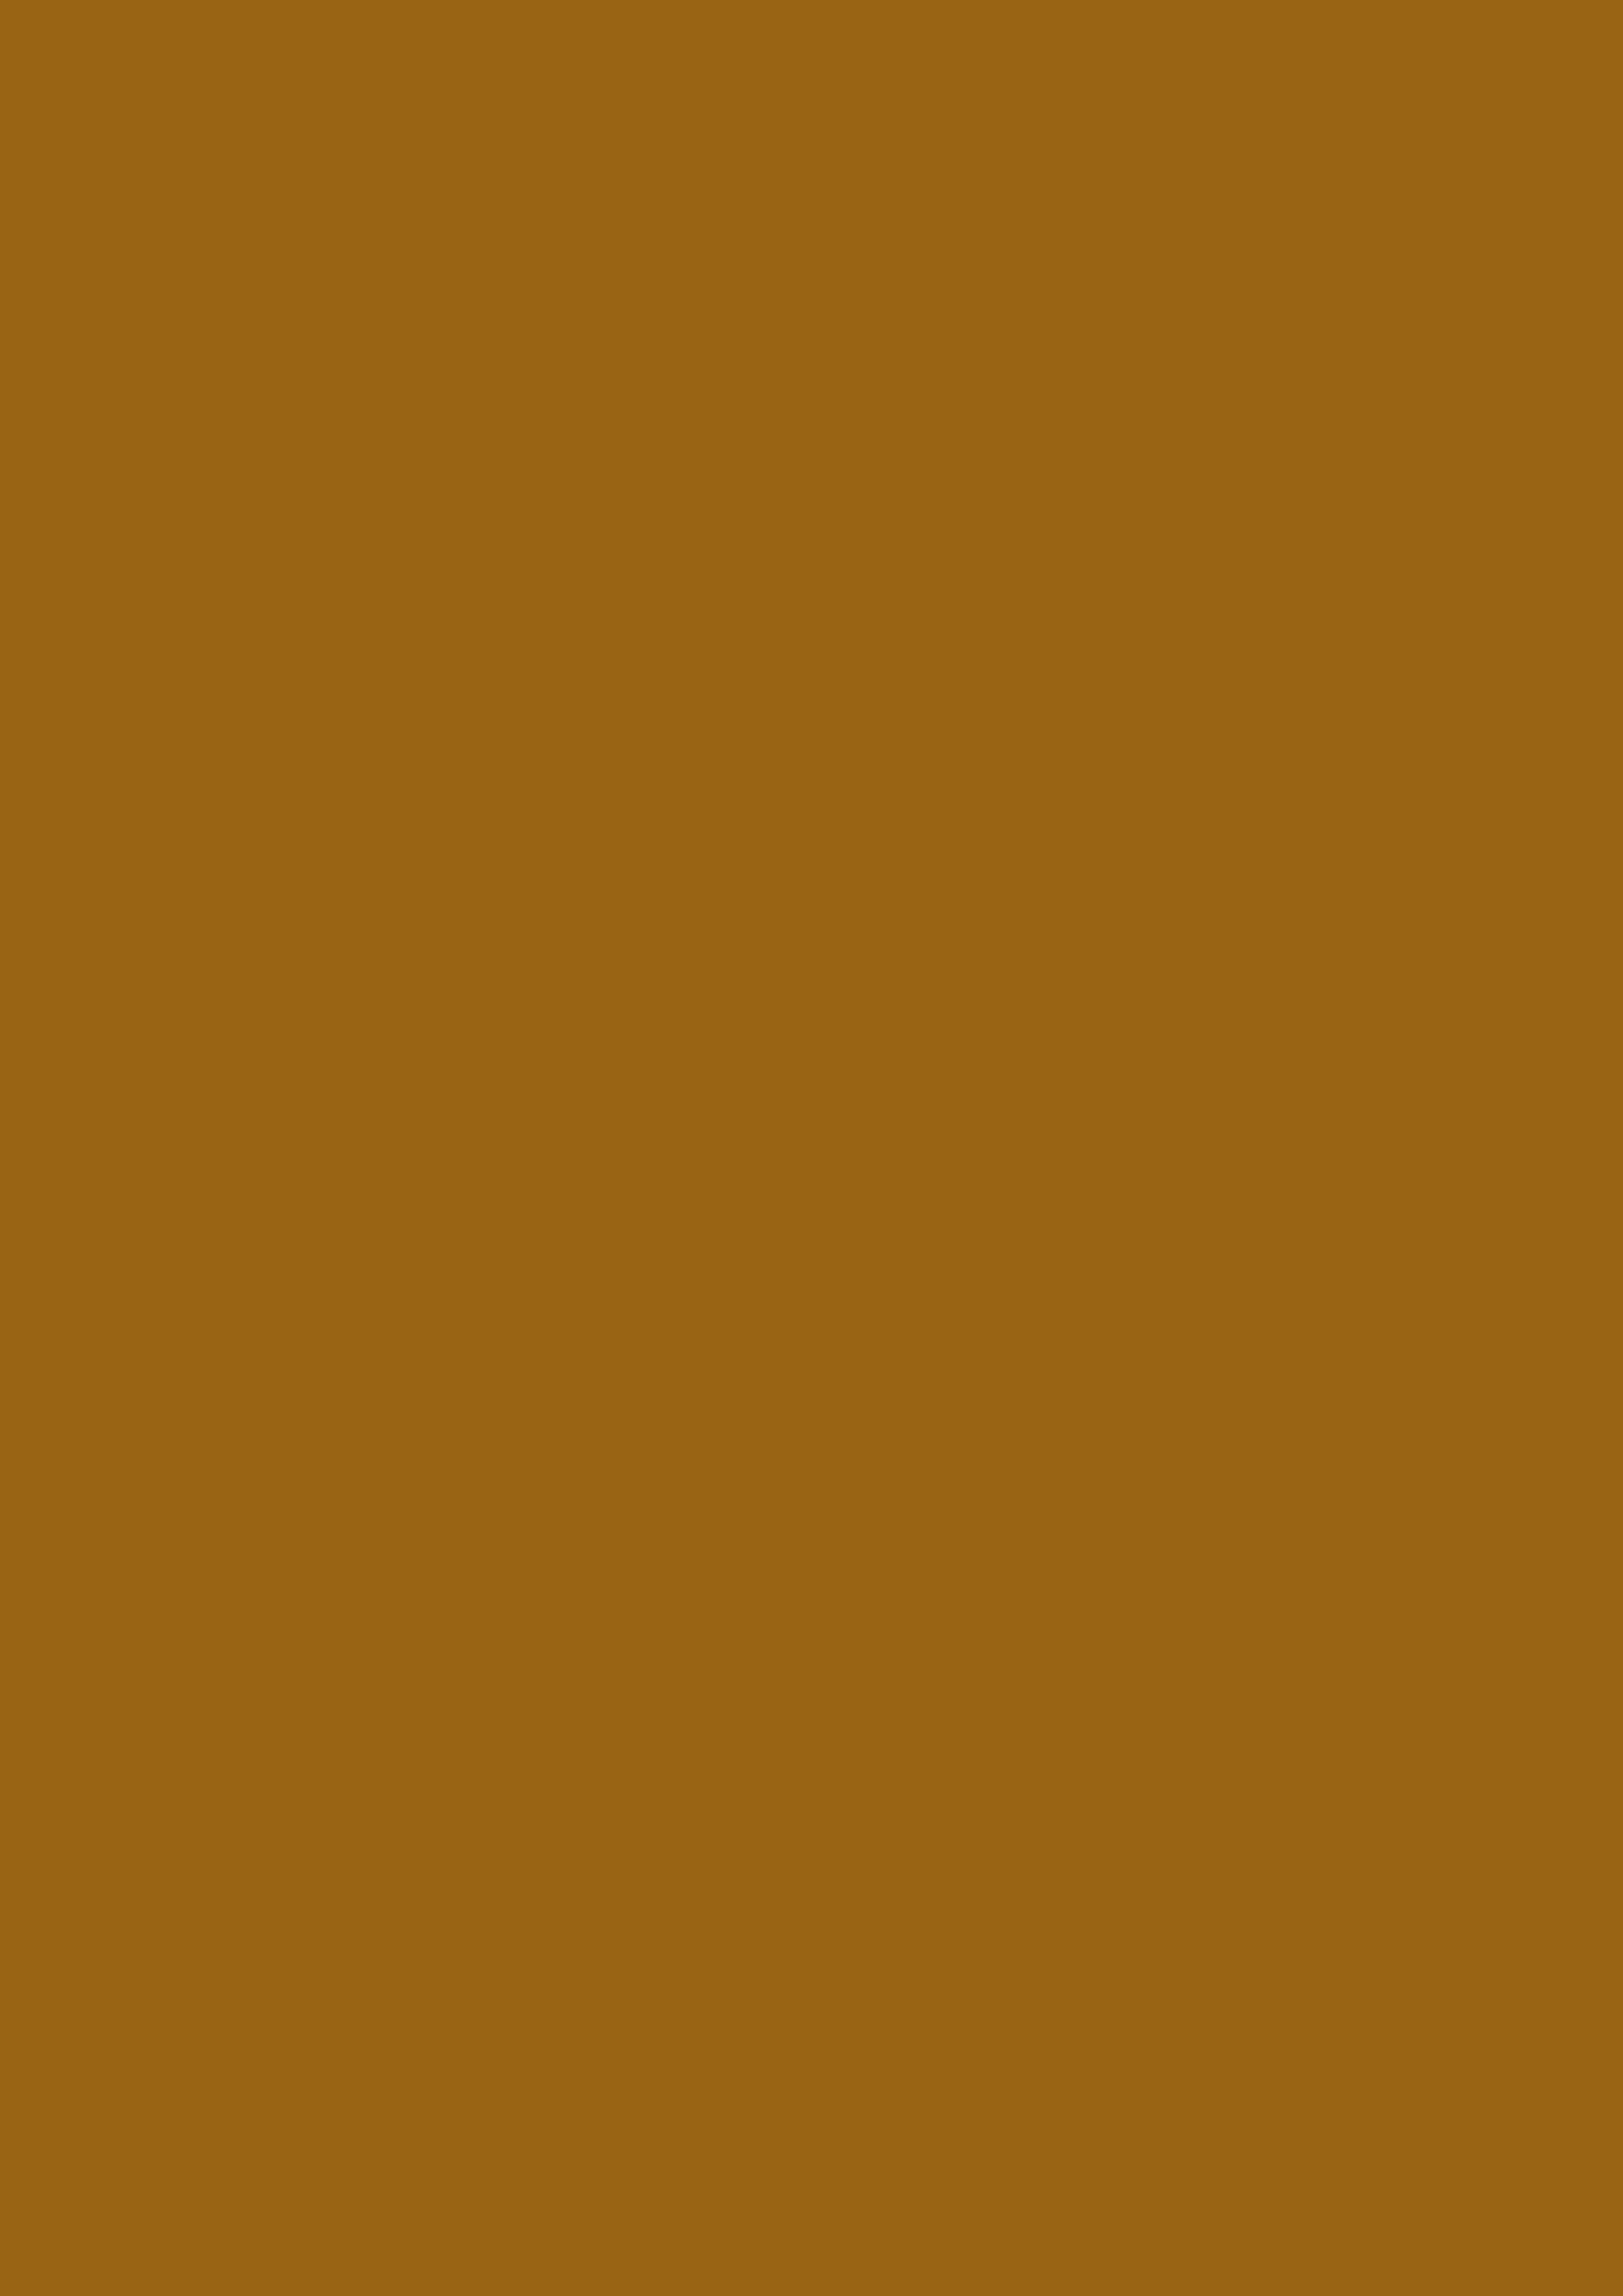 2480x3508 Golden Brown Solid Color Background